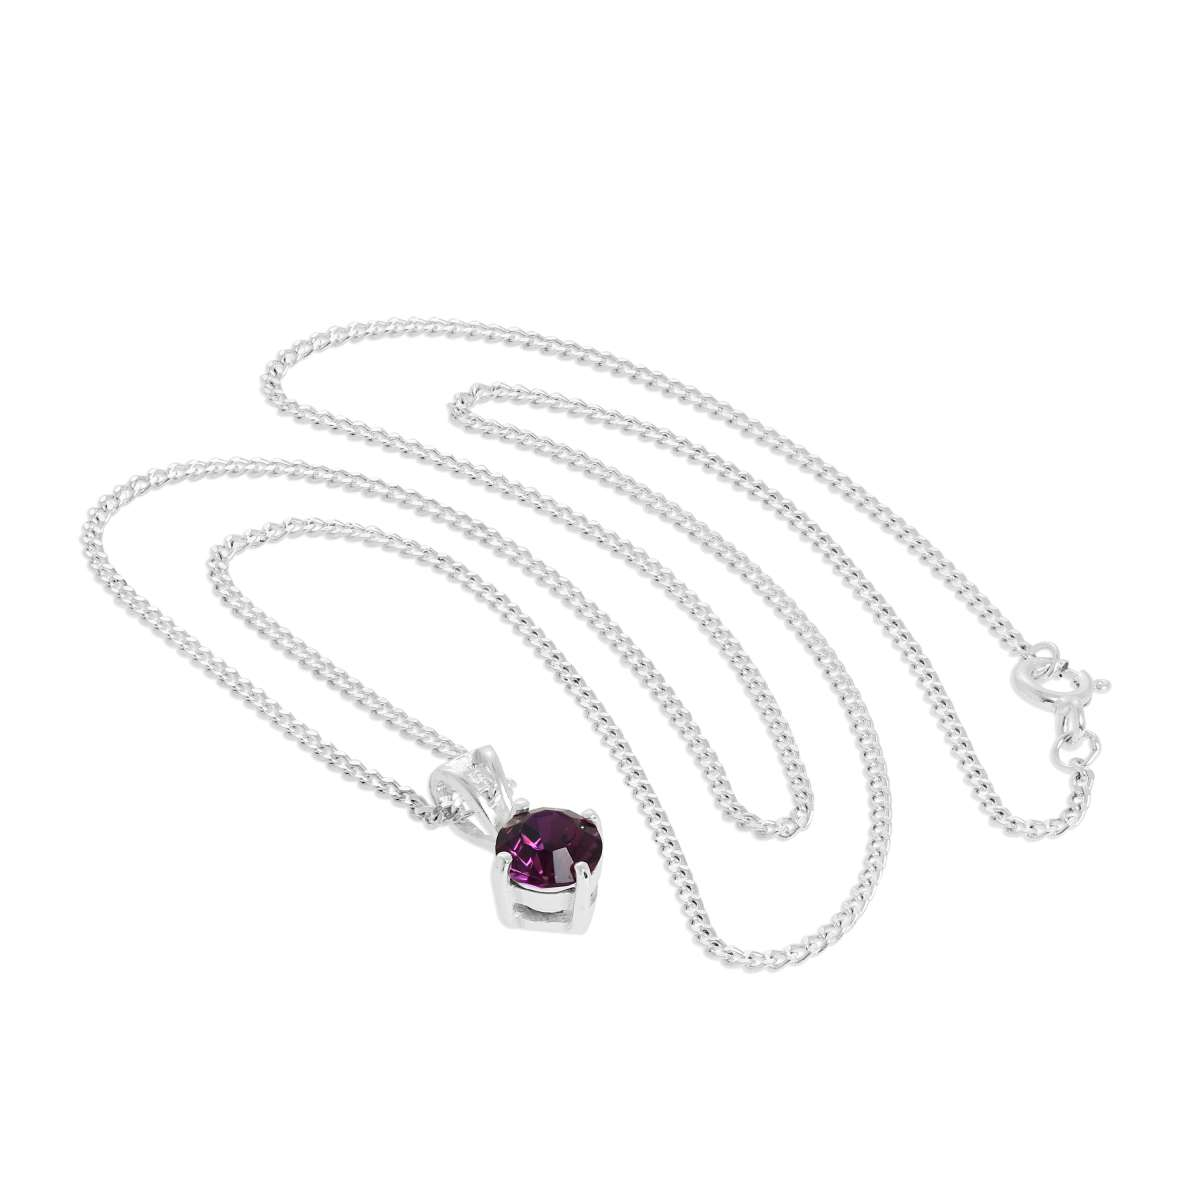 Alterative image for Sterling Silver & Amethyst Crystal Made with Swarovski Elements February Birthstone Pendant Necklace 16 - 24 Inches